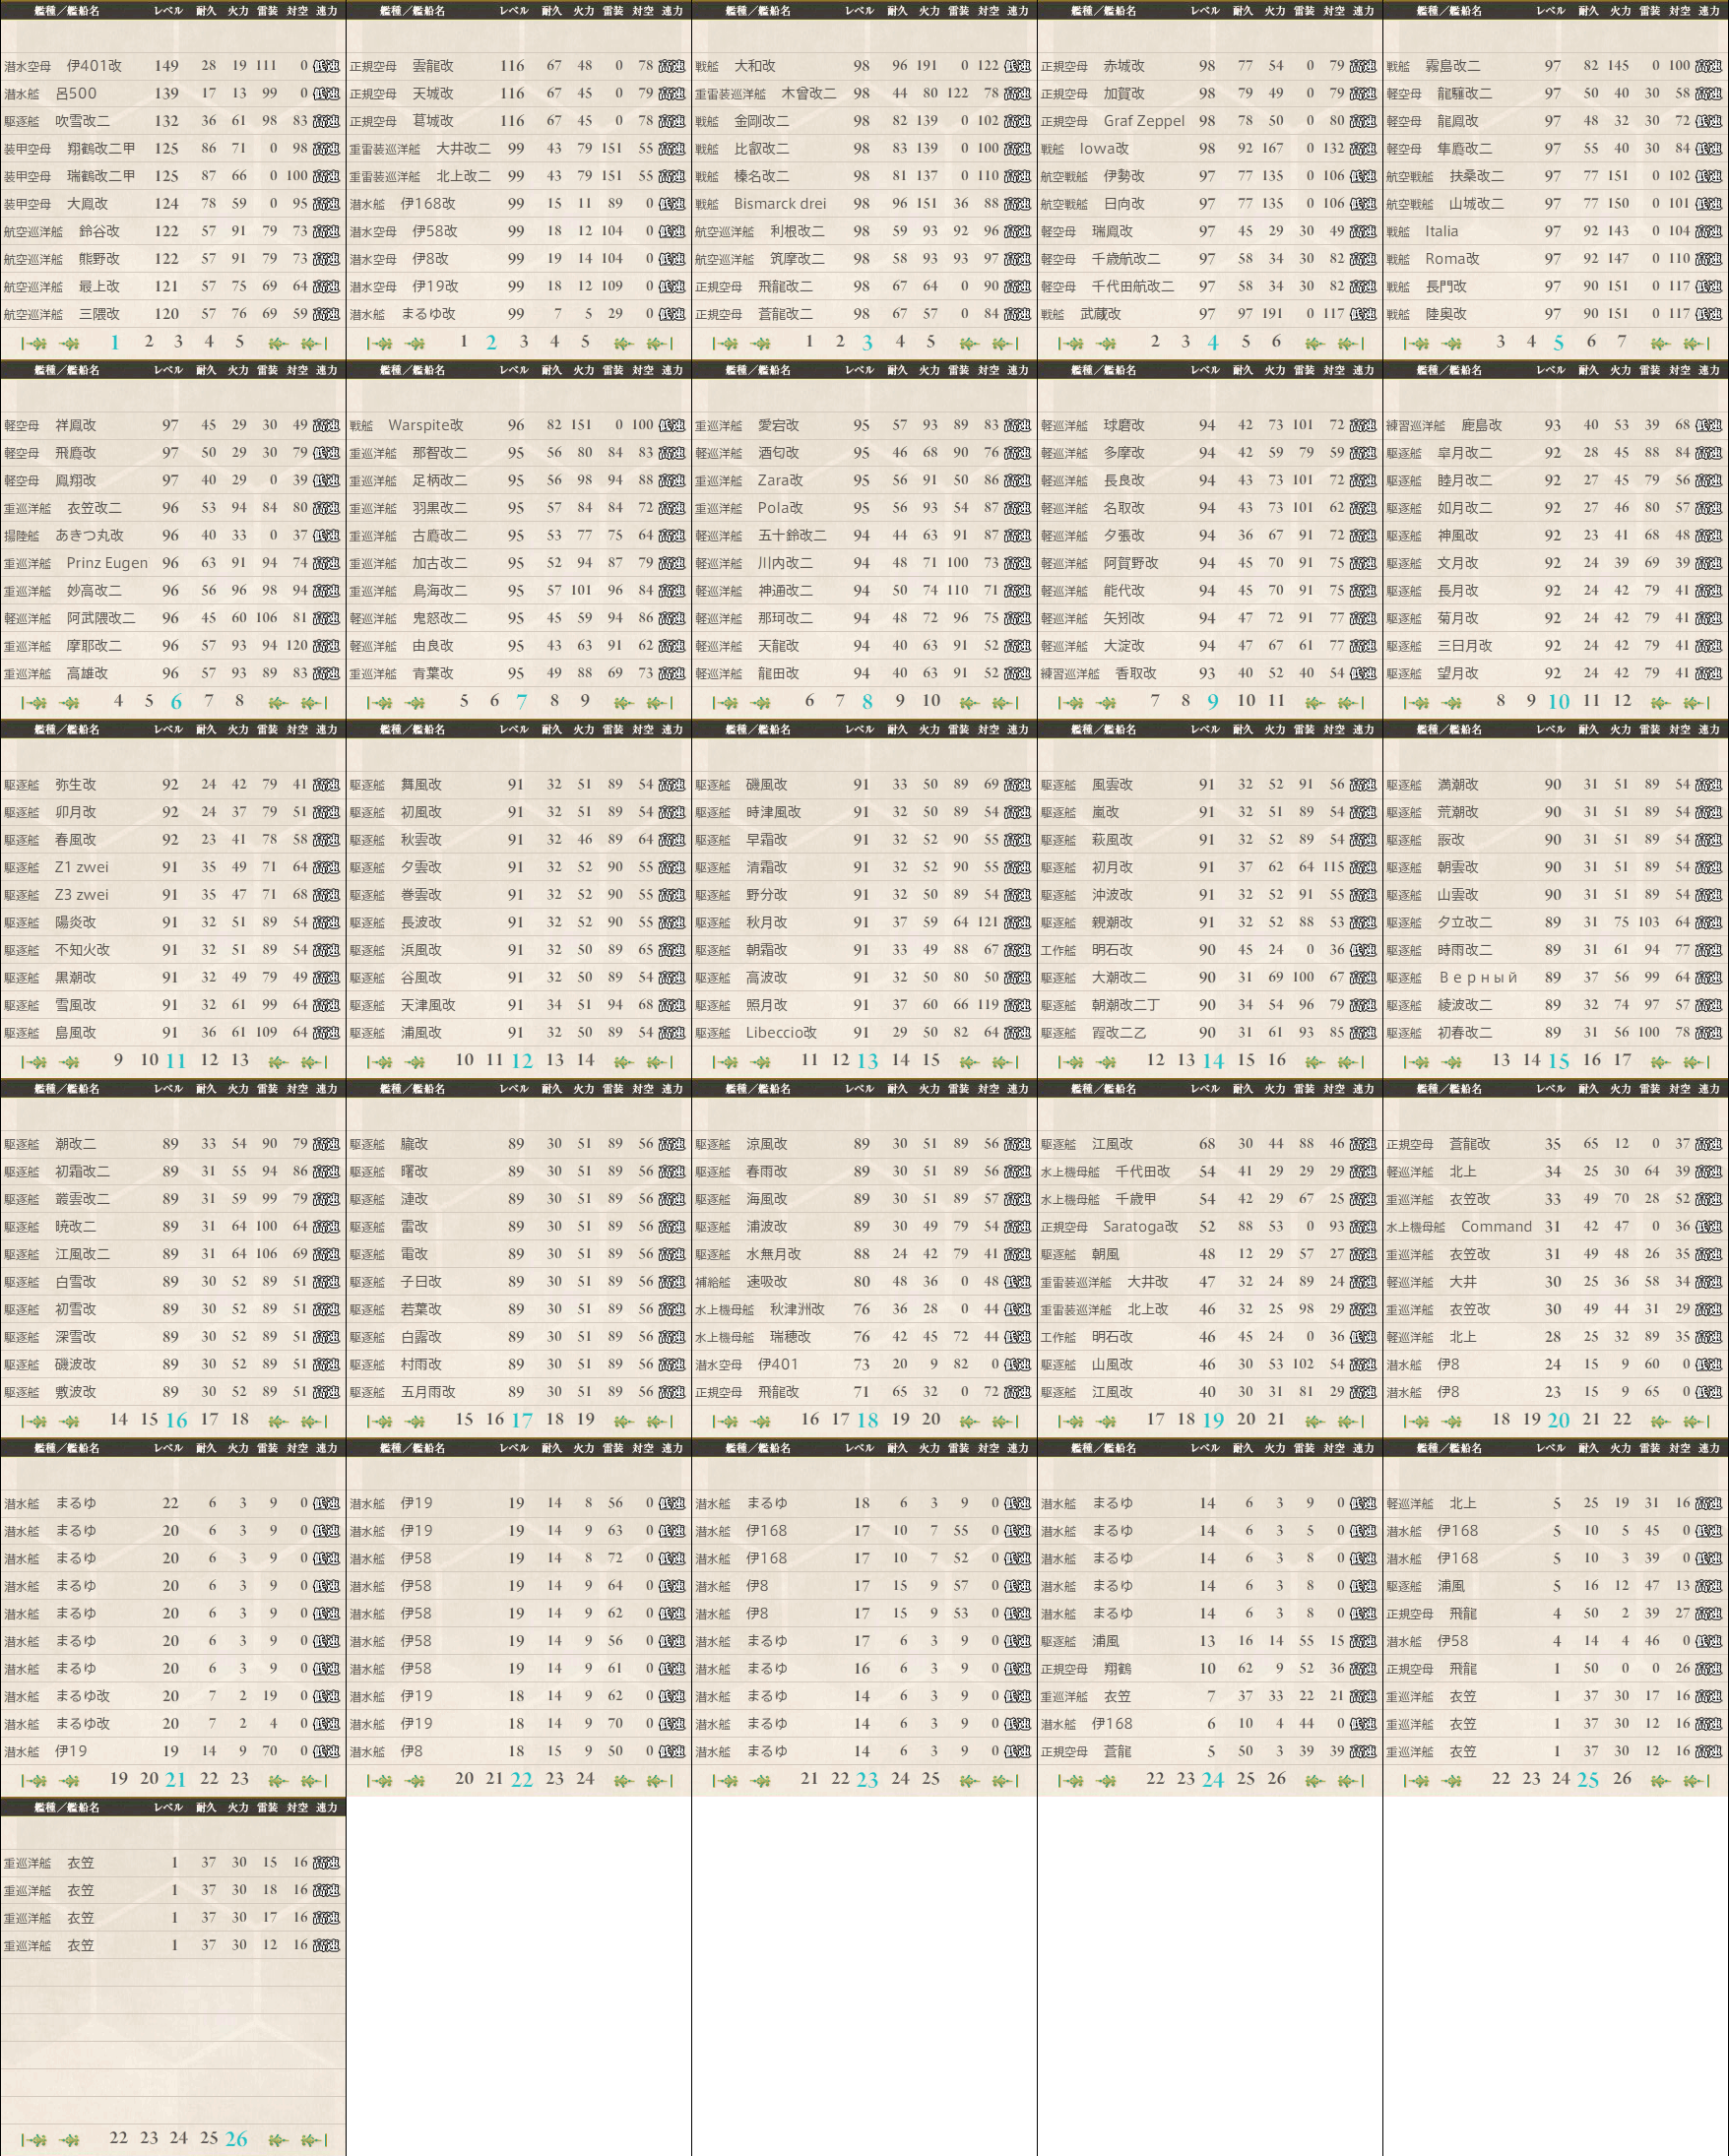 data.kancolle.levelsort.20170108.png